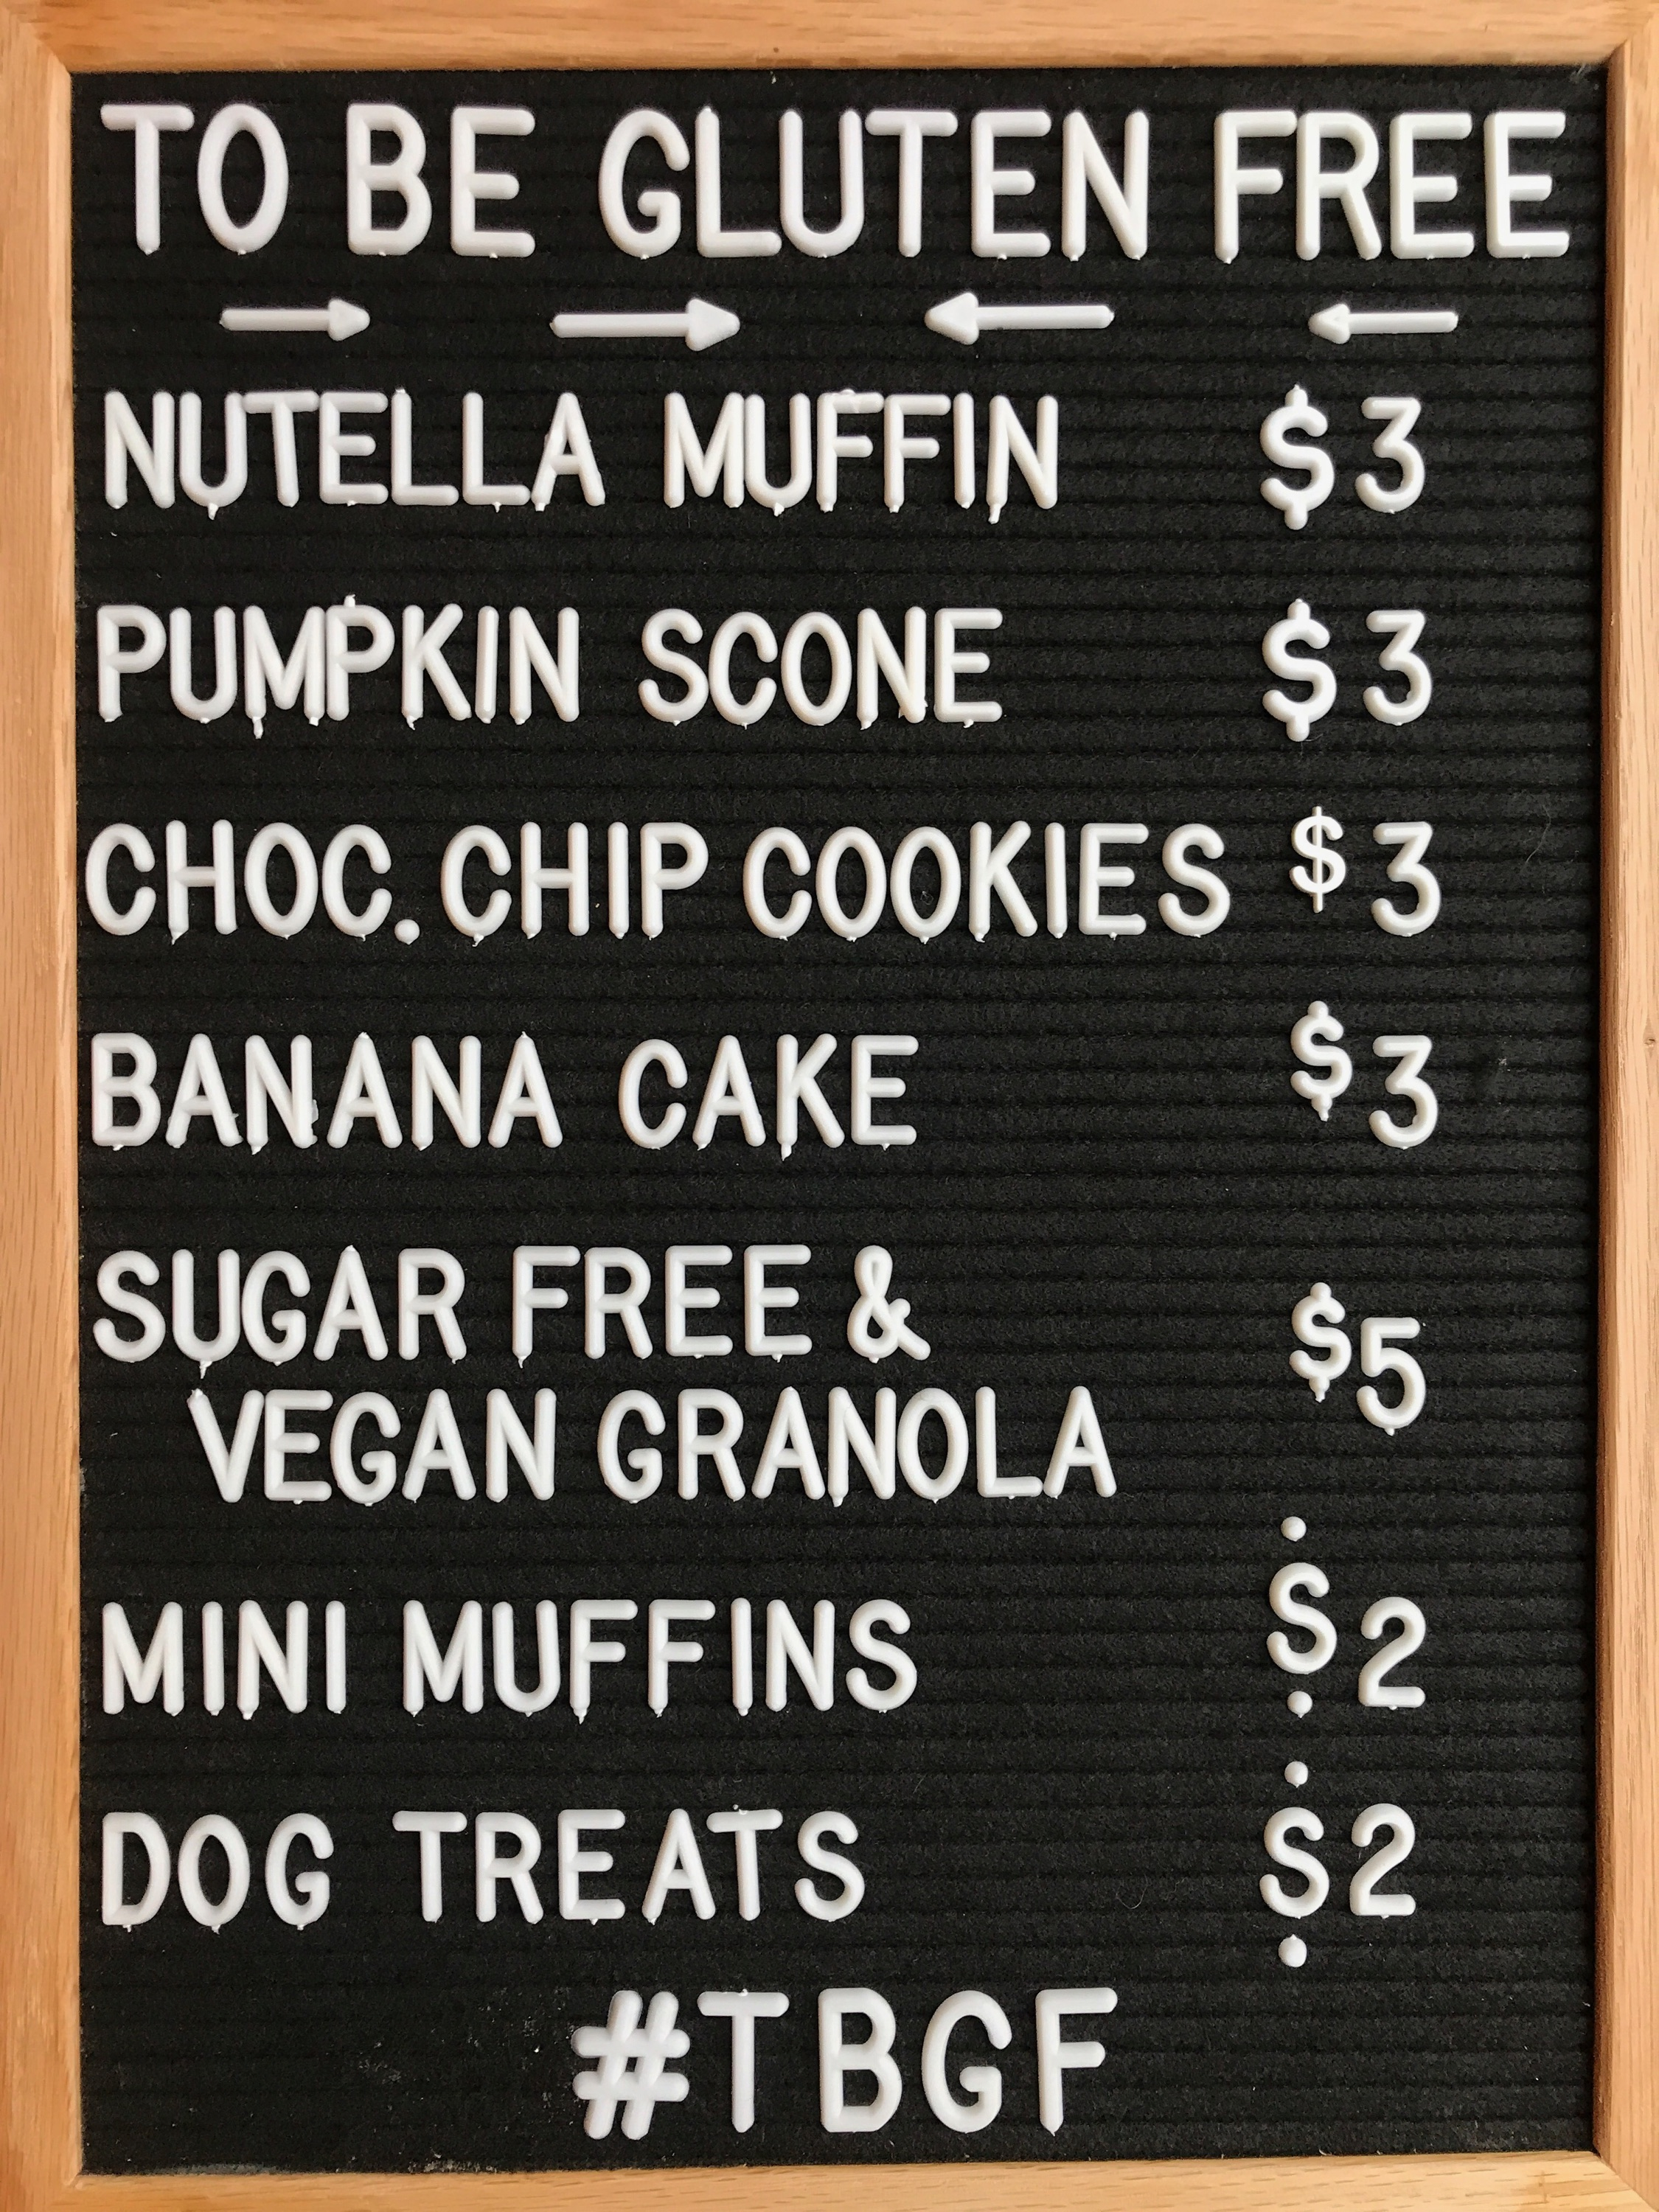 To Be Gluten Free's Mini Mart offerings.